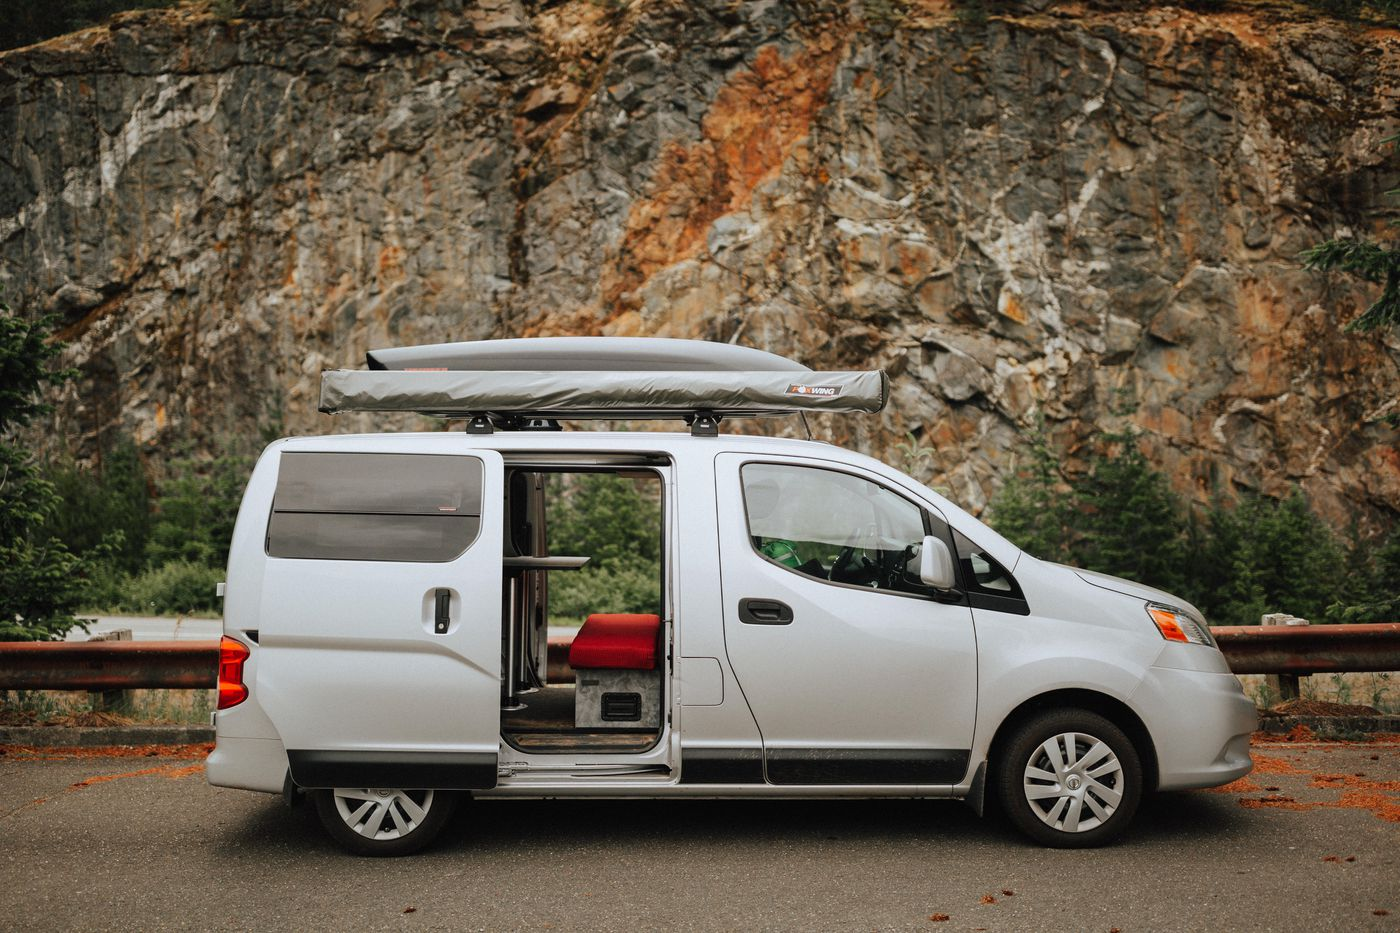 c988bfff46 The 5 best affordable RVs and camper vans you can buy right now - Curbed